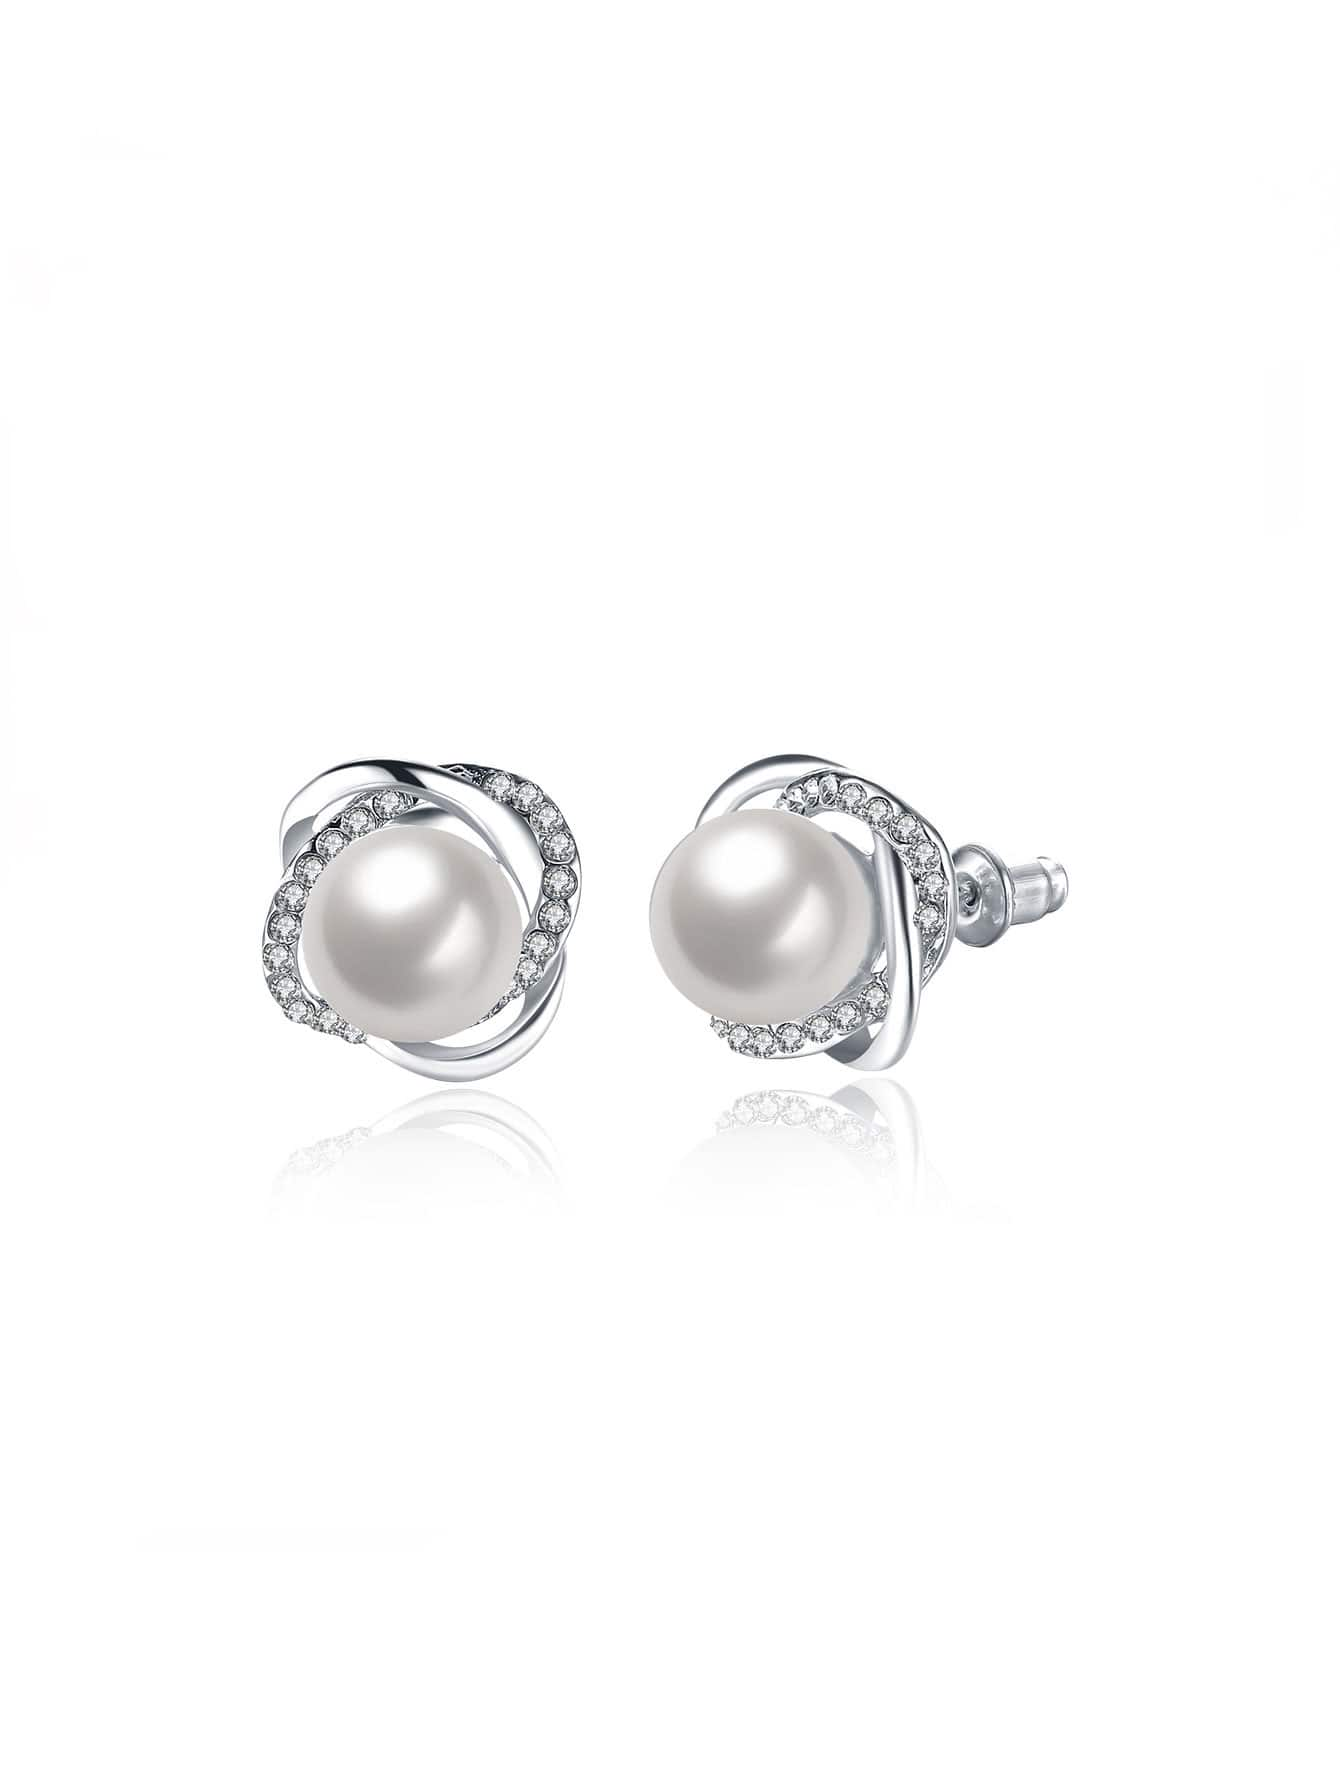 Rhinestone And Faux Pearl Design Stud Earrings